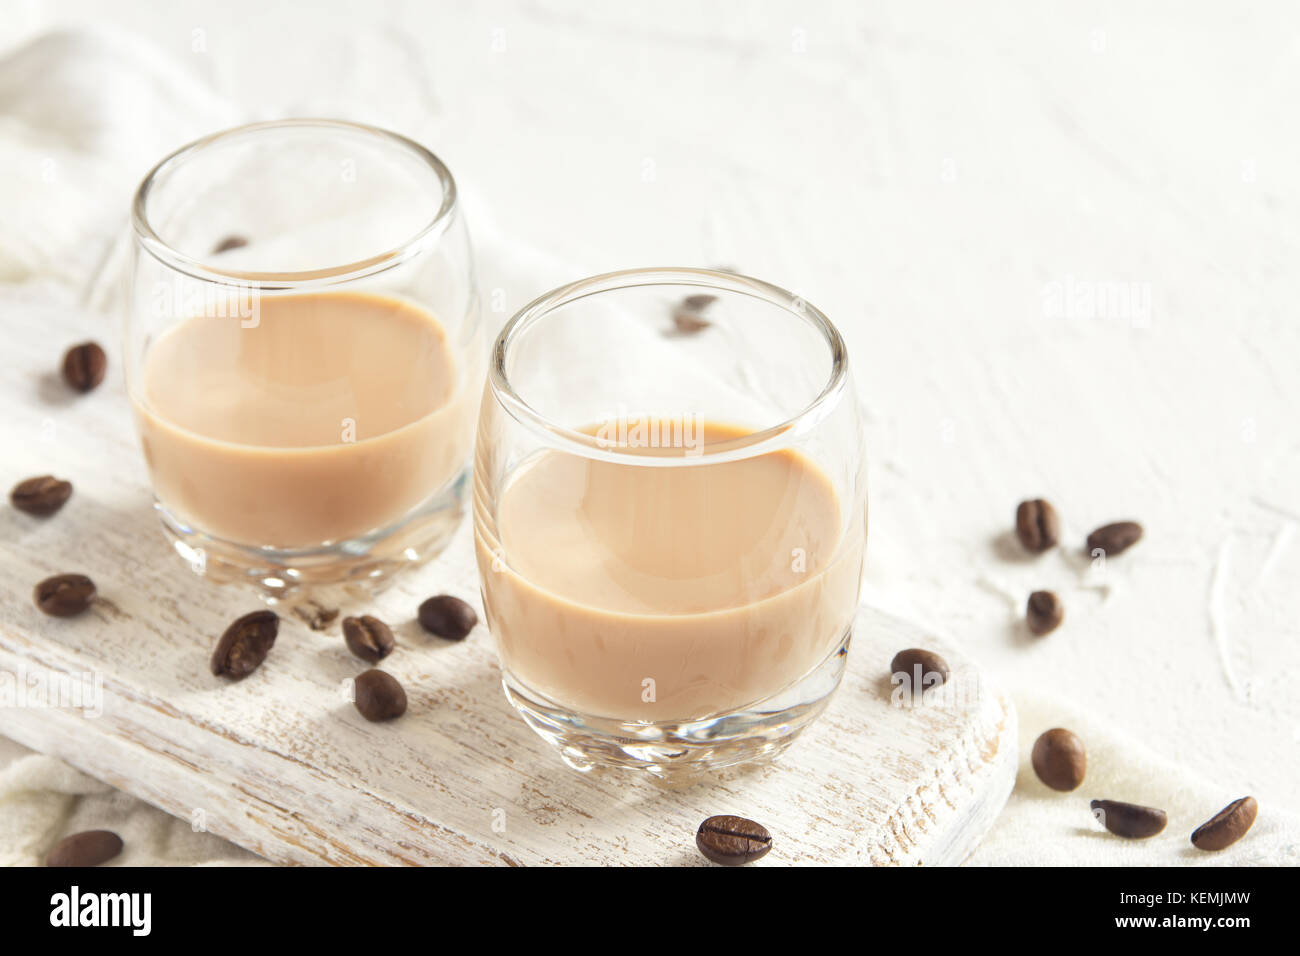 Irish cream coffee liqueur and coffee beans over white wooden background - homemade festive alcoholic drink - Stock Image